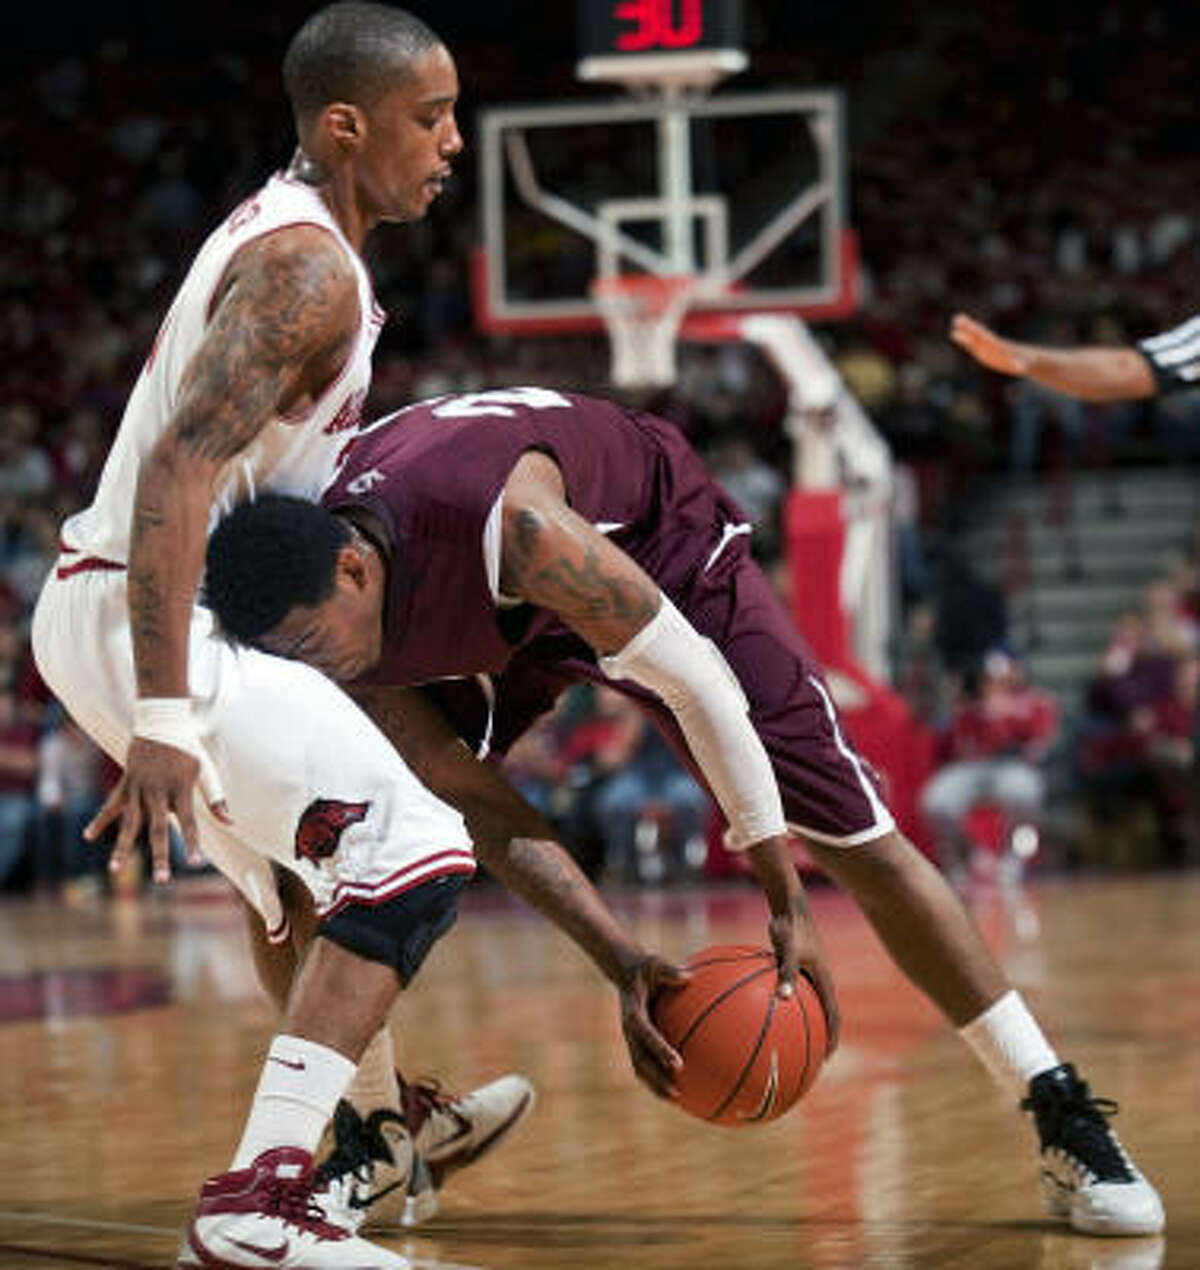 Travele Jones, right, makes a move against Arkansas, one of three games he has played since rejoining TSU.